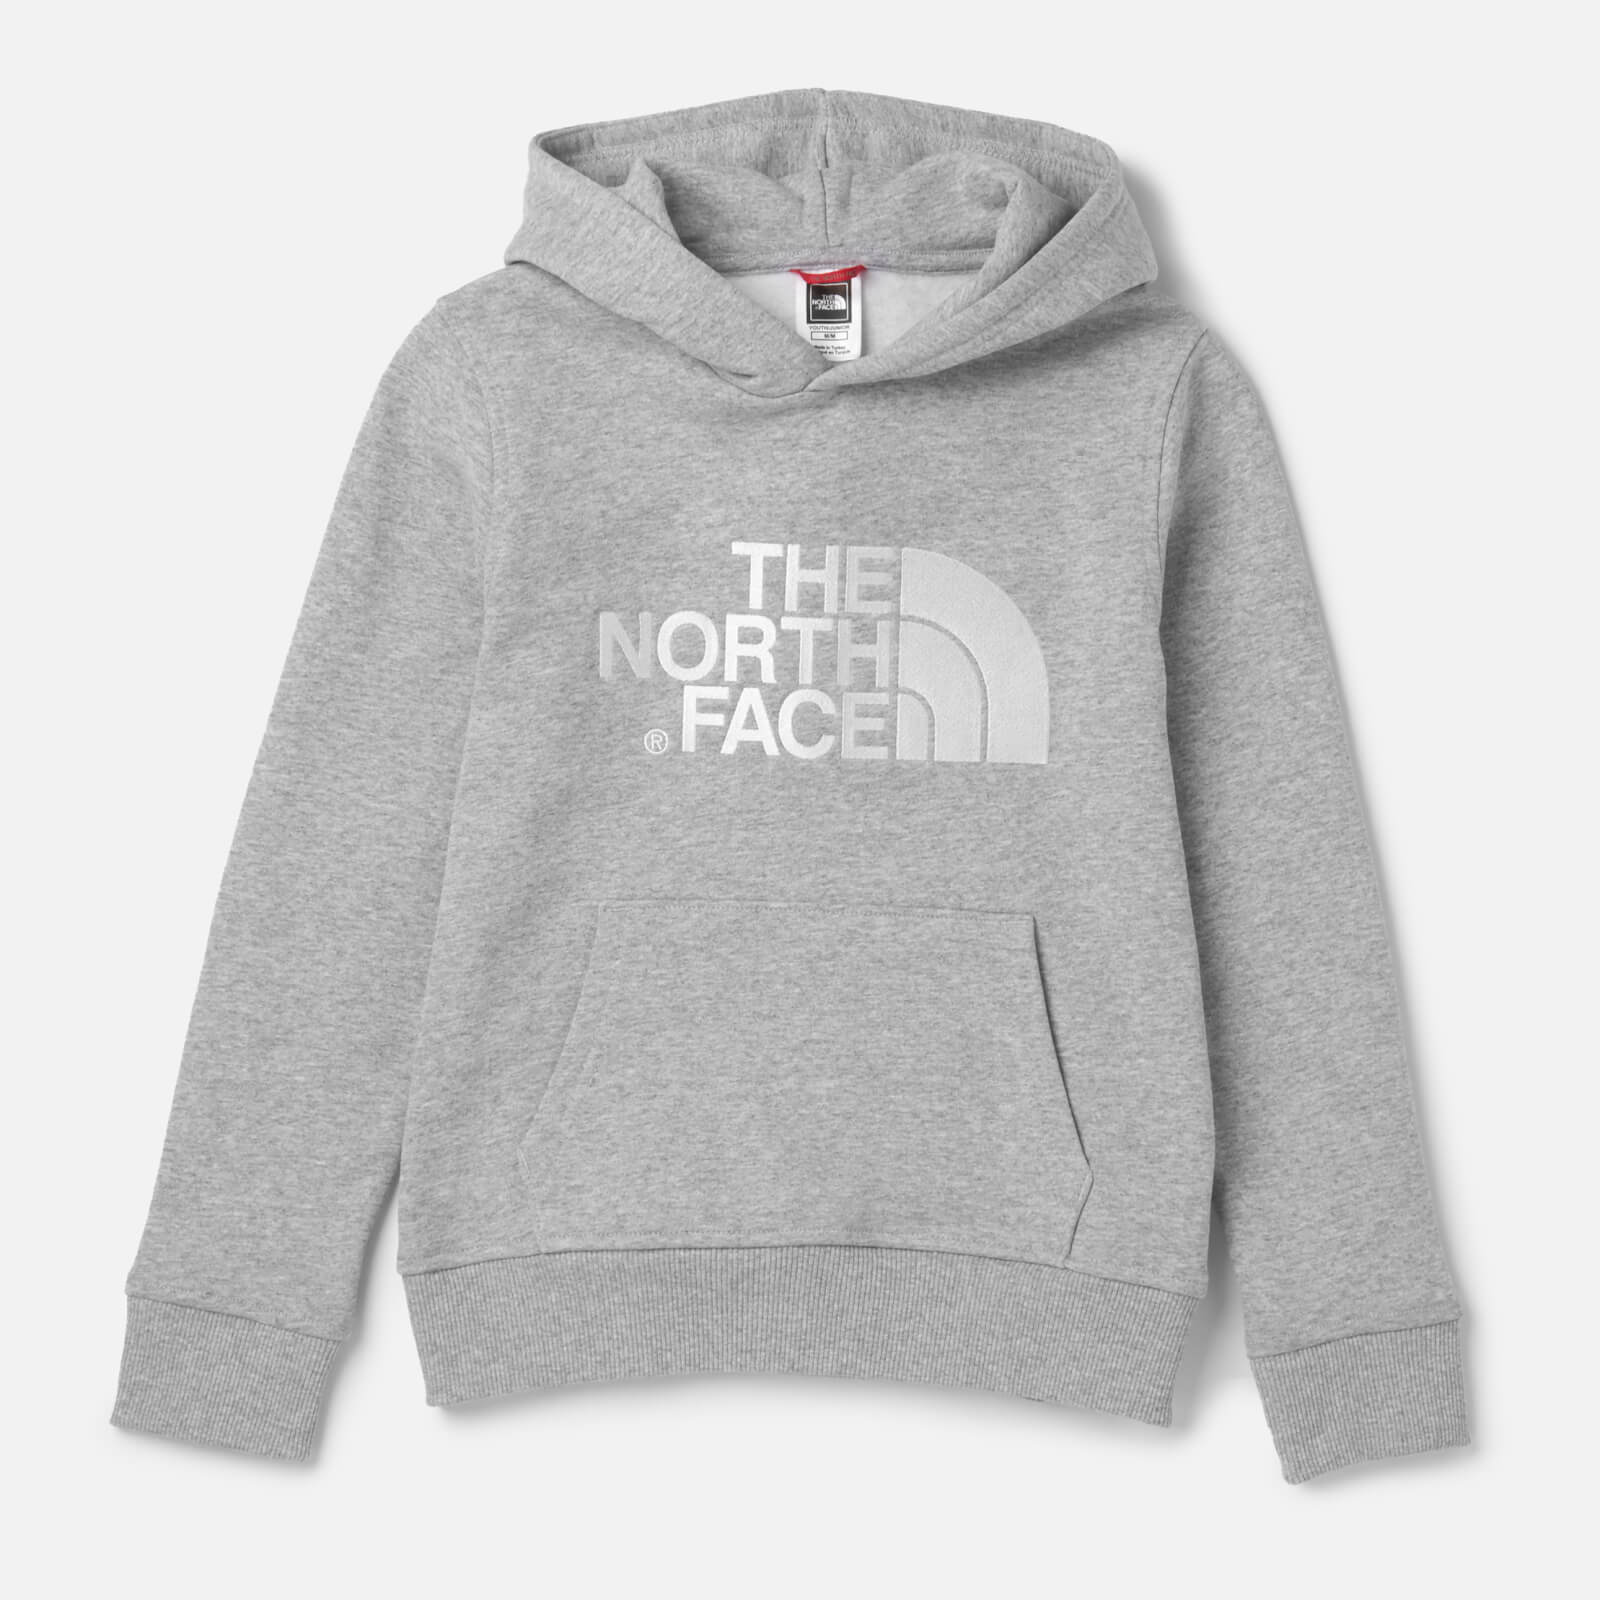 1bc5a2e61 The North Face Kids' Drew Peak Pull Over Hoodie - TNF Light Grey Heather/TNF  White Clothing | TheHut.com